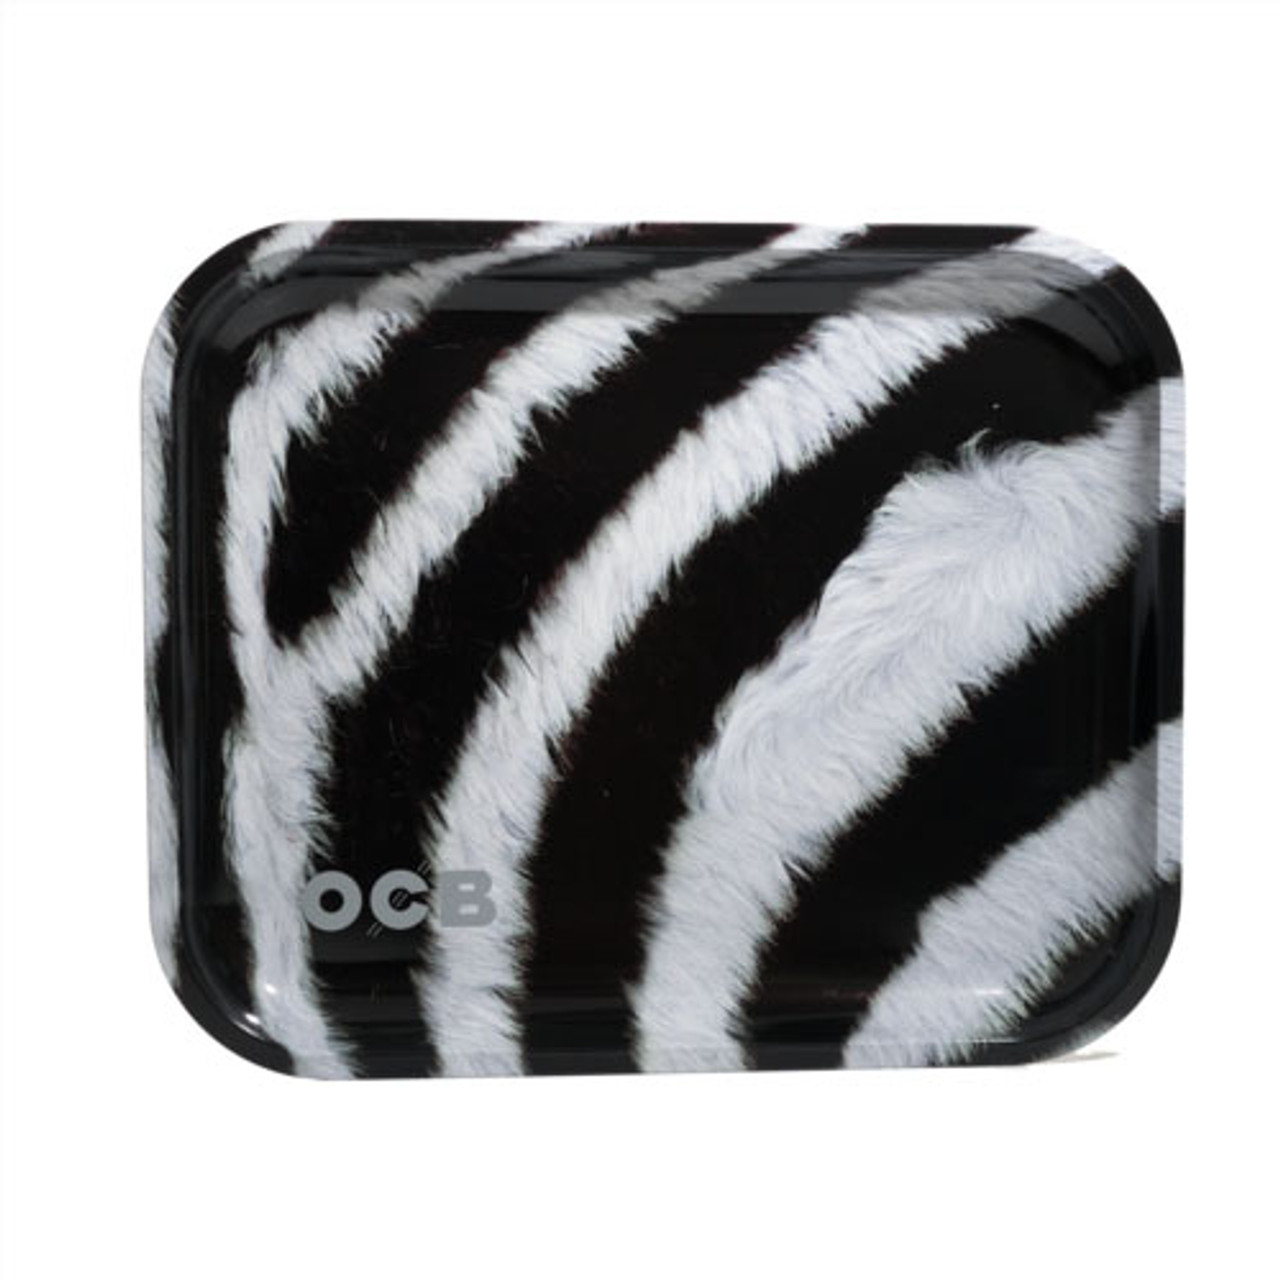 OCB - Limited Edition Metal Tray - Zebra